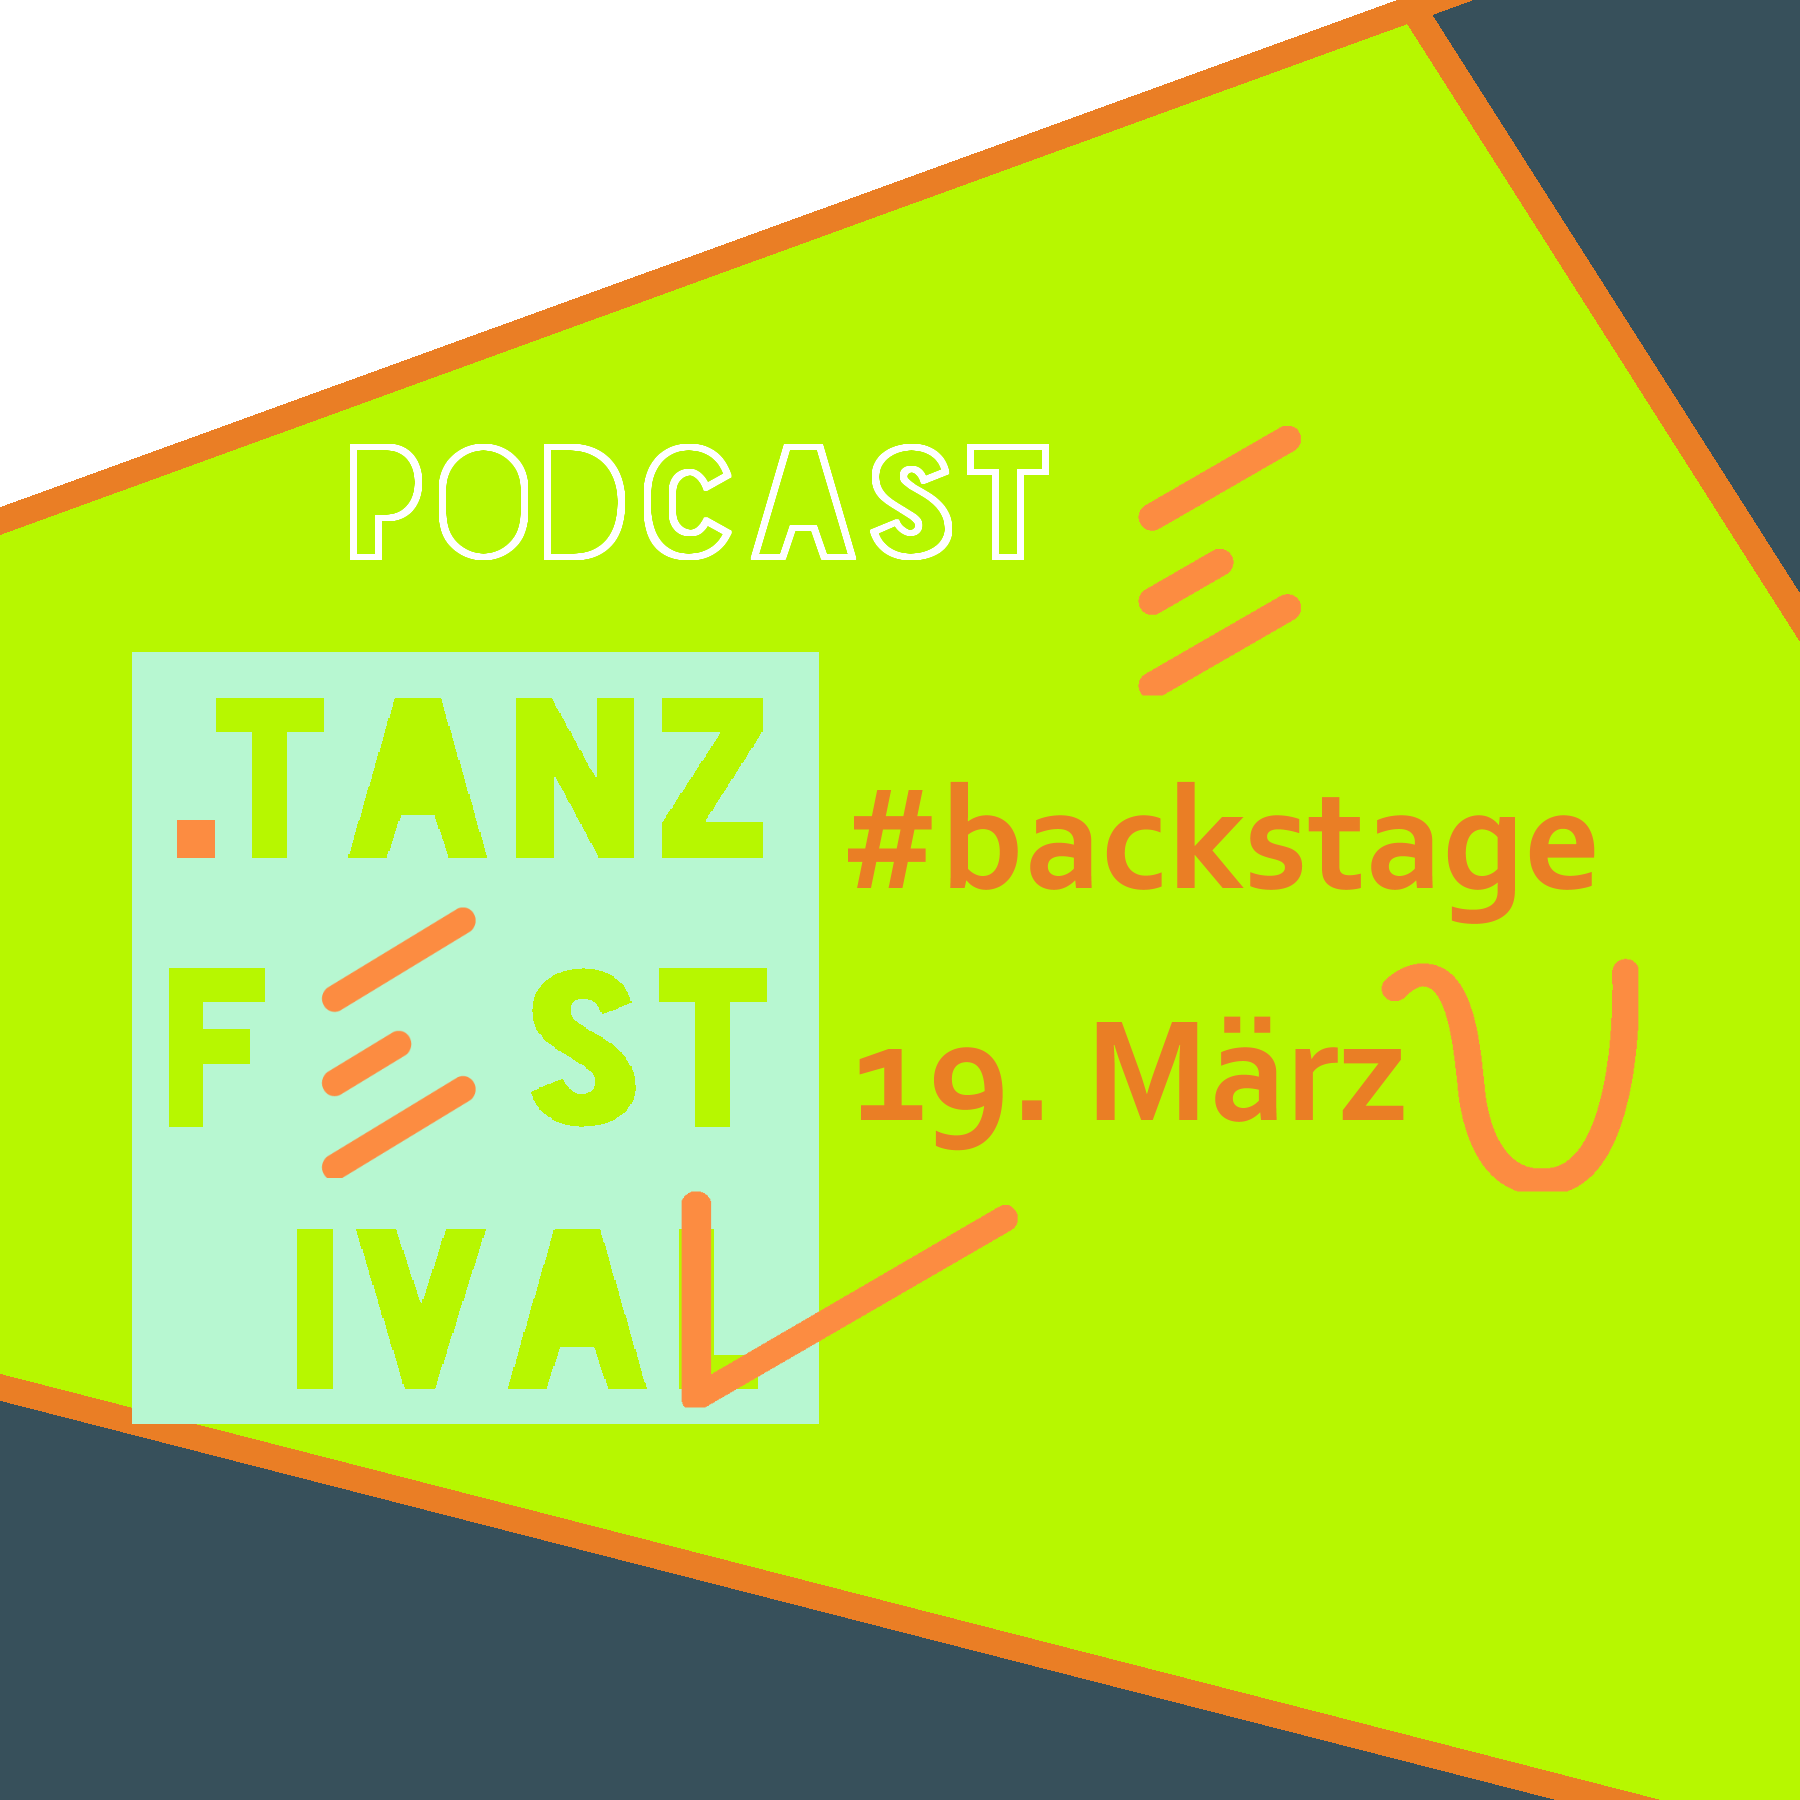 Backstage Podcast